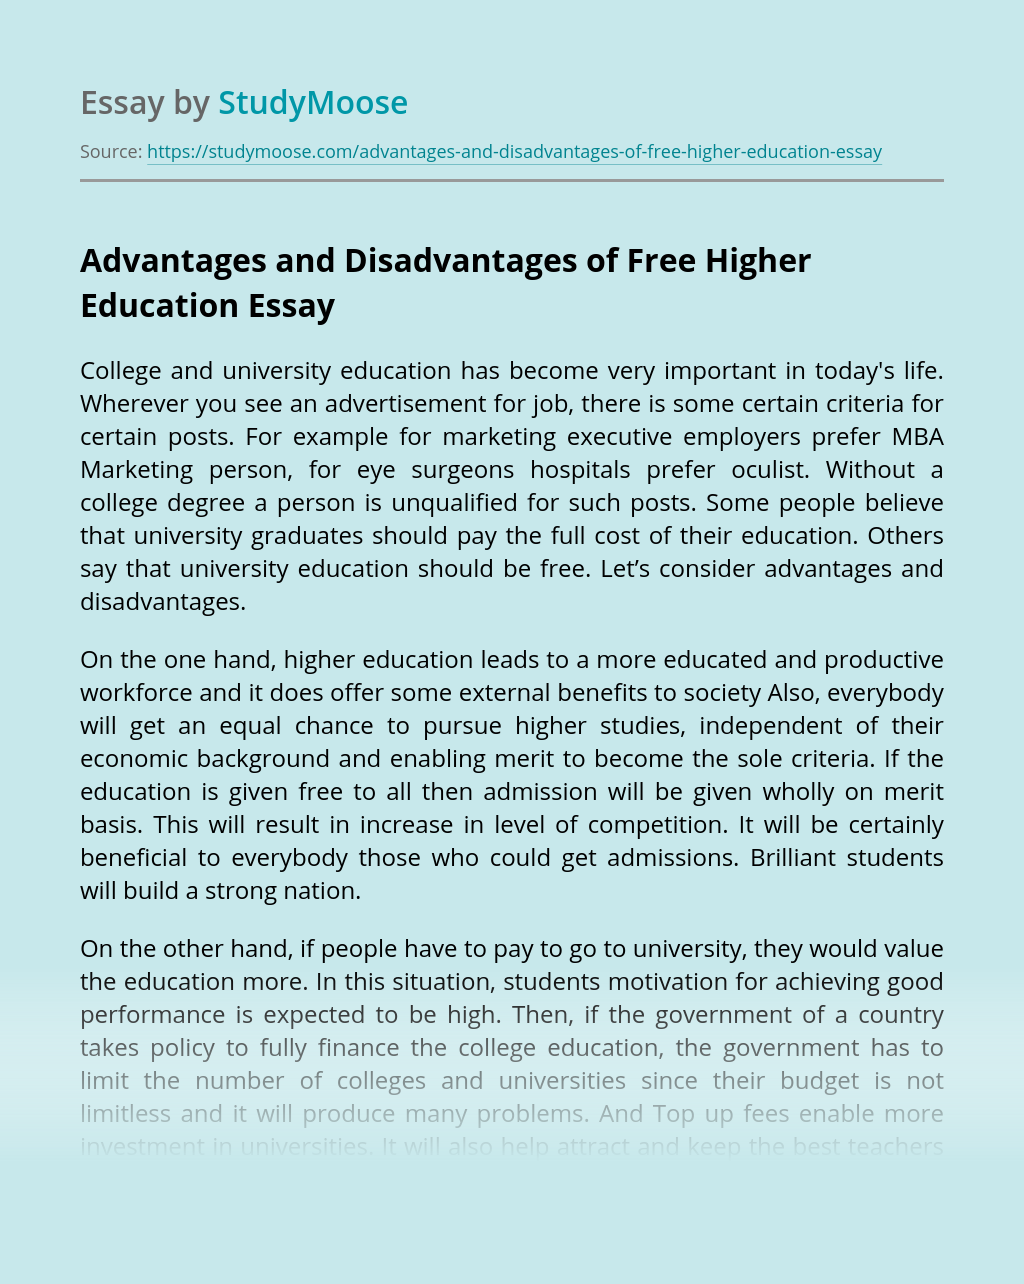 Advantages and Disadvantages of Free Higher Education